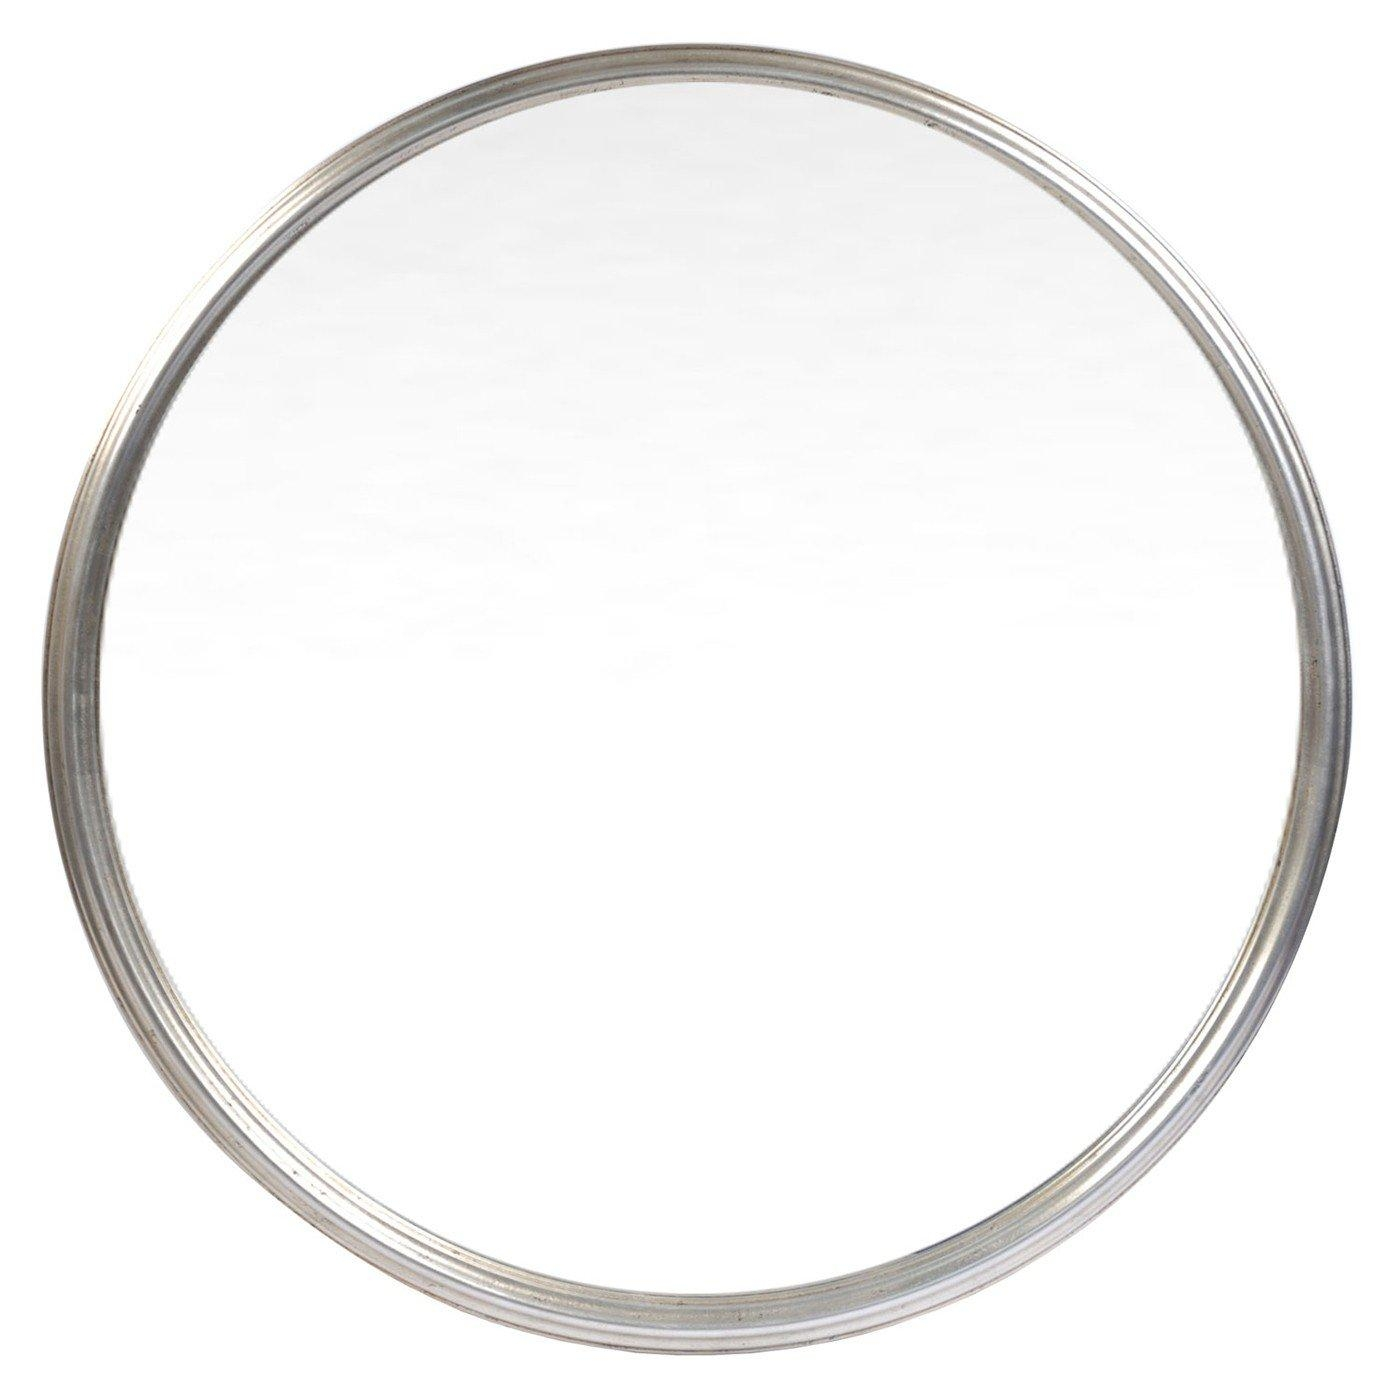 Round Mirrors | Modern Round & Circle Mirrors | Heal's Within Round Mirrors (View 12 of 20)